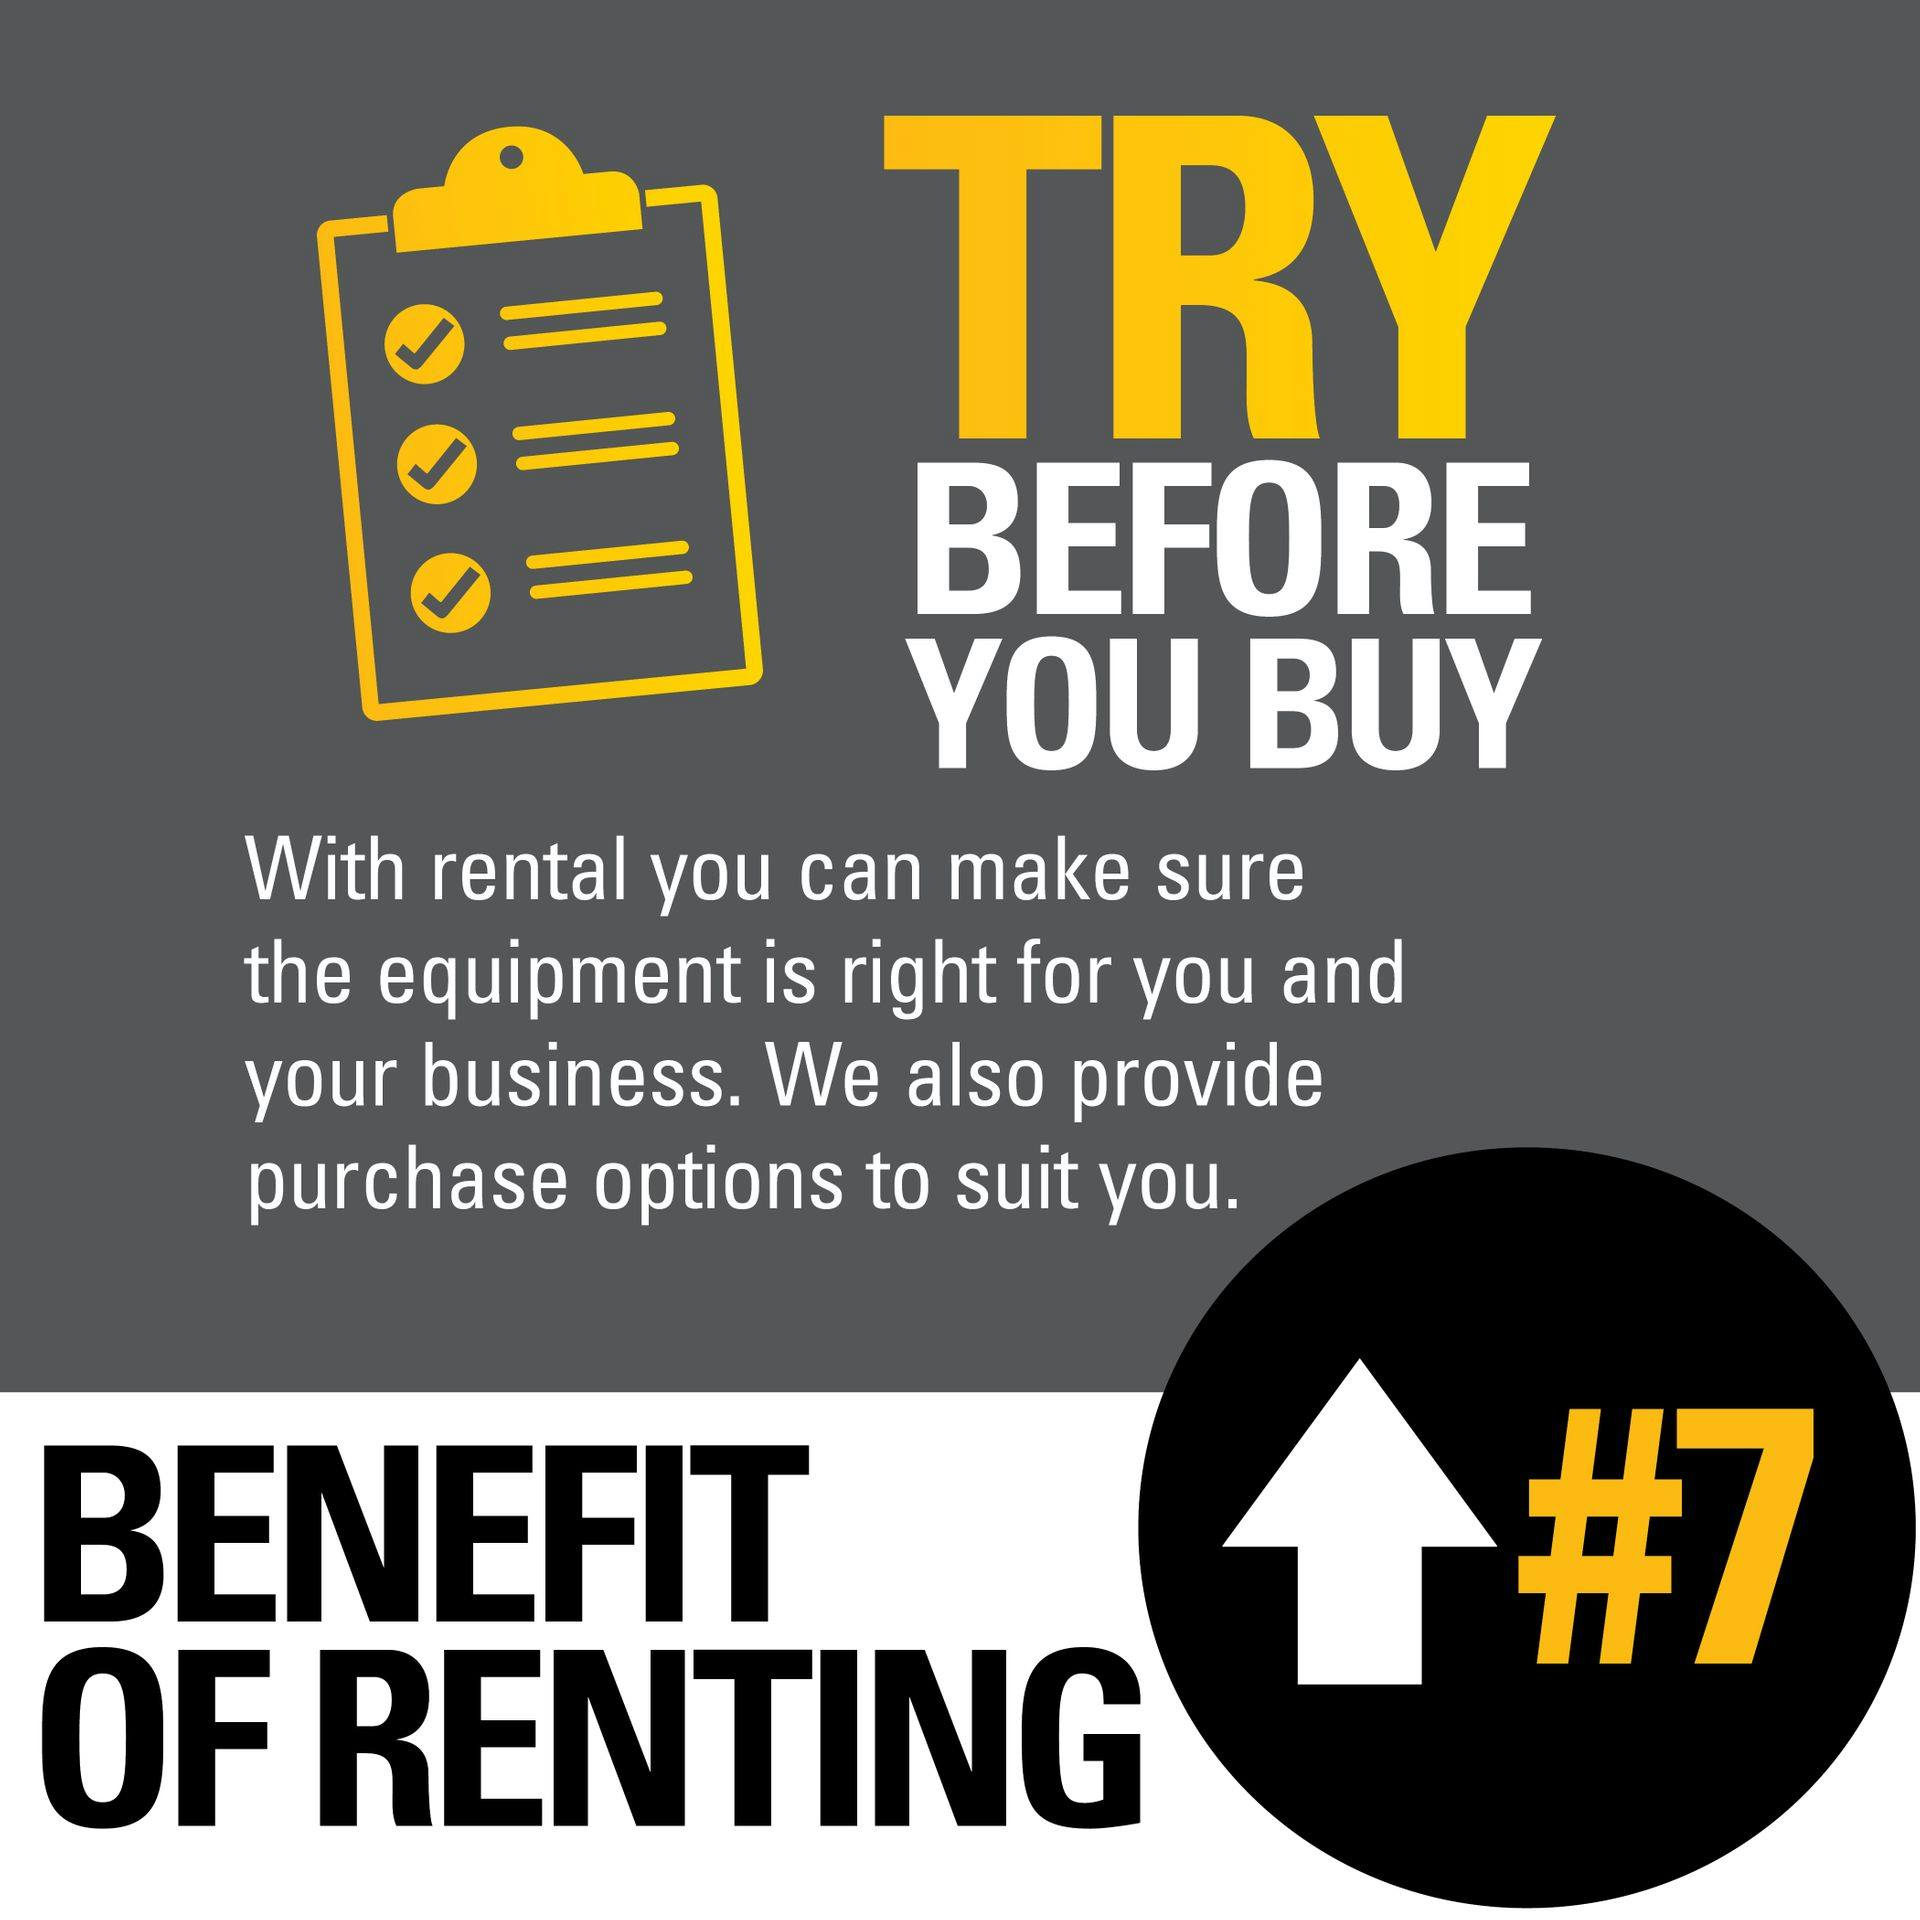 7 Benefit of Renting